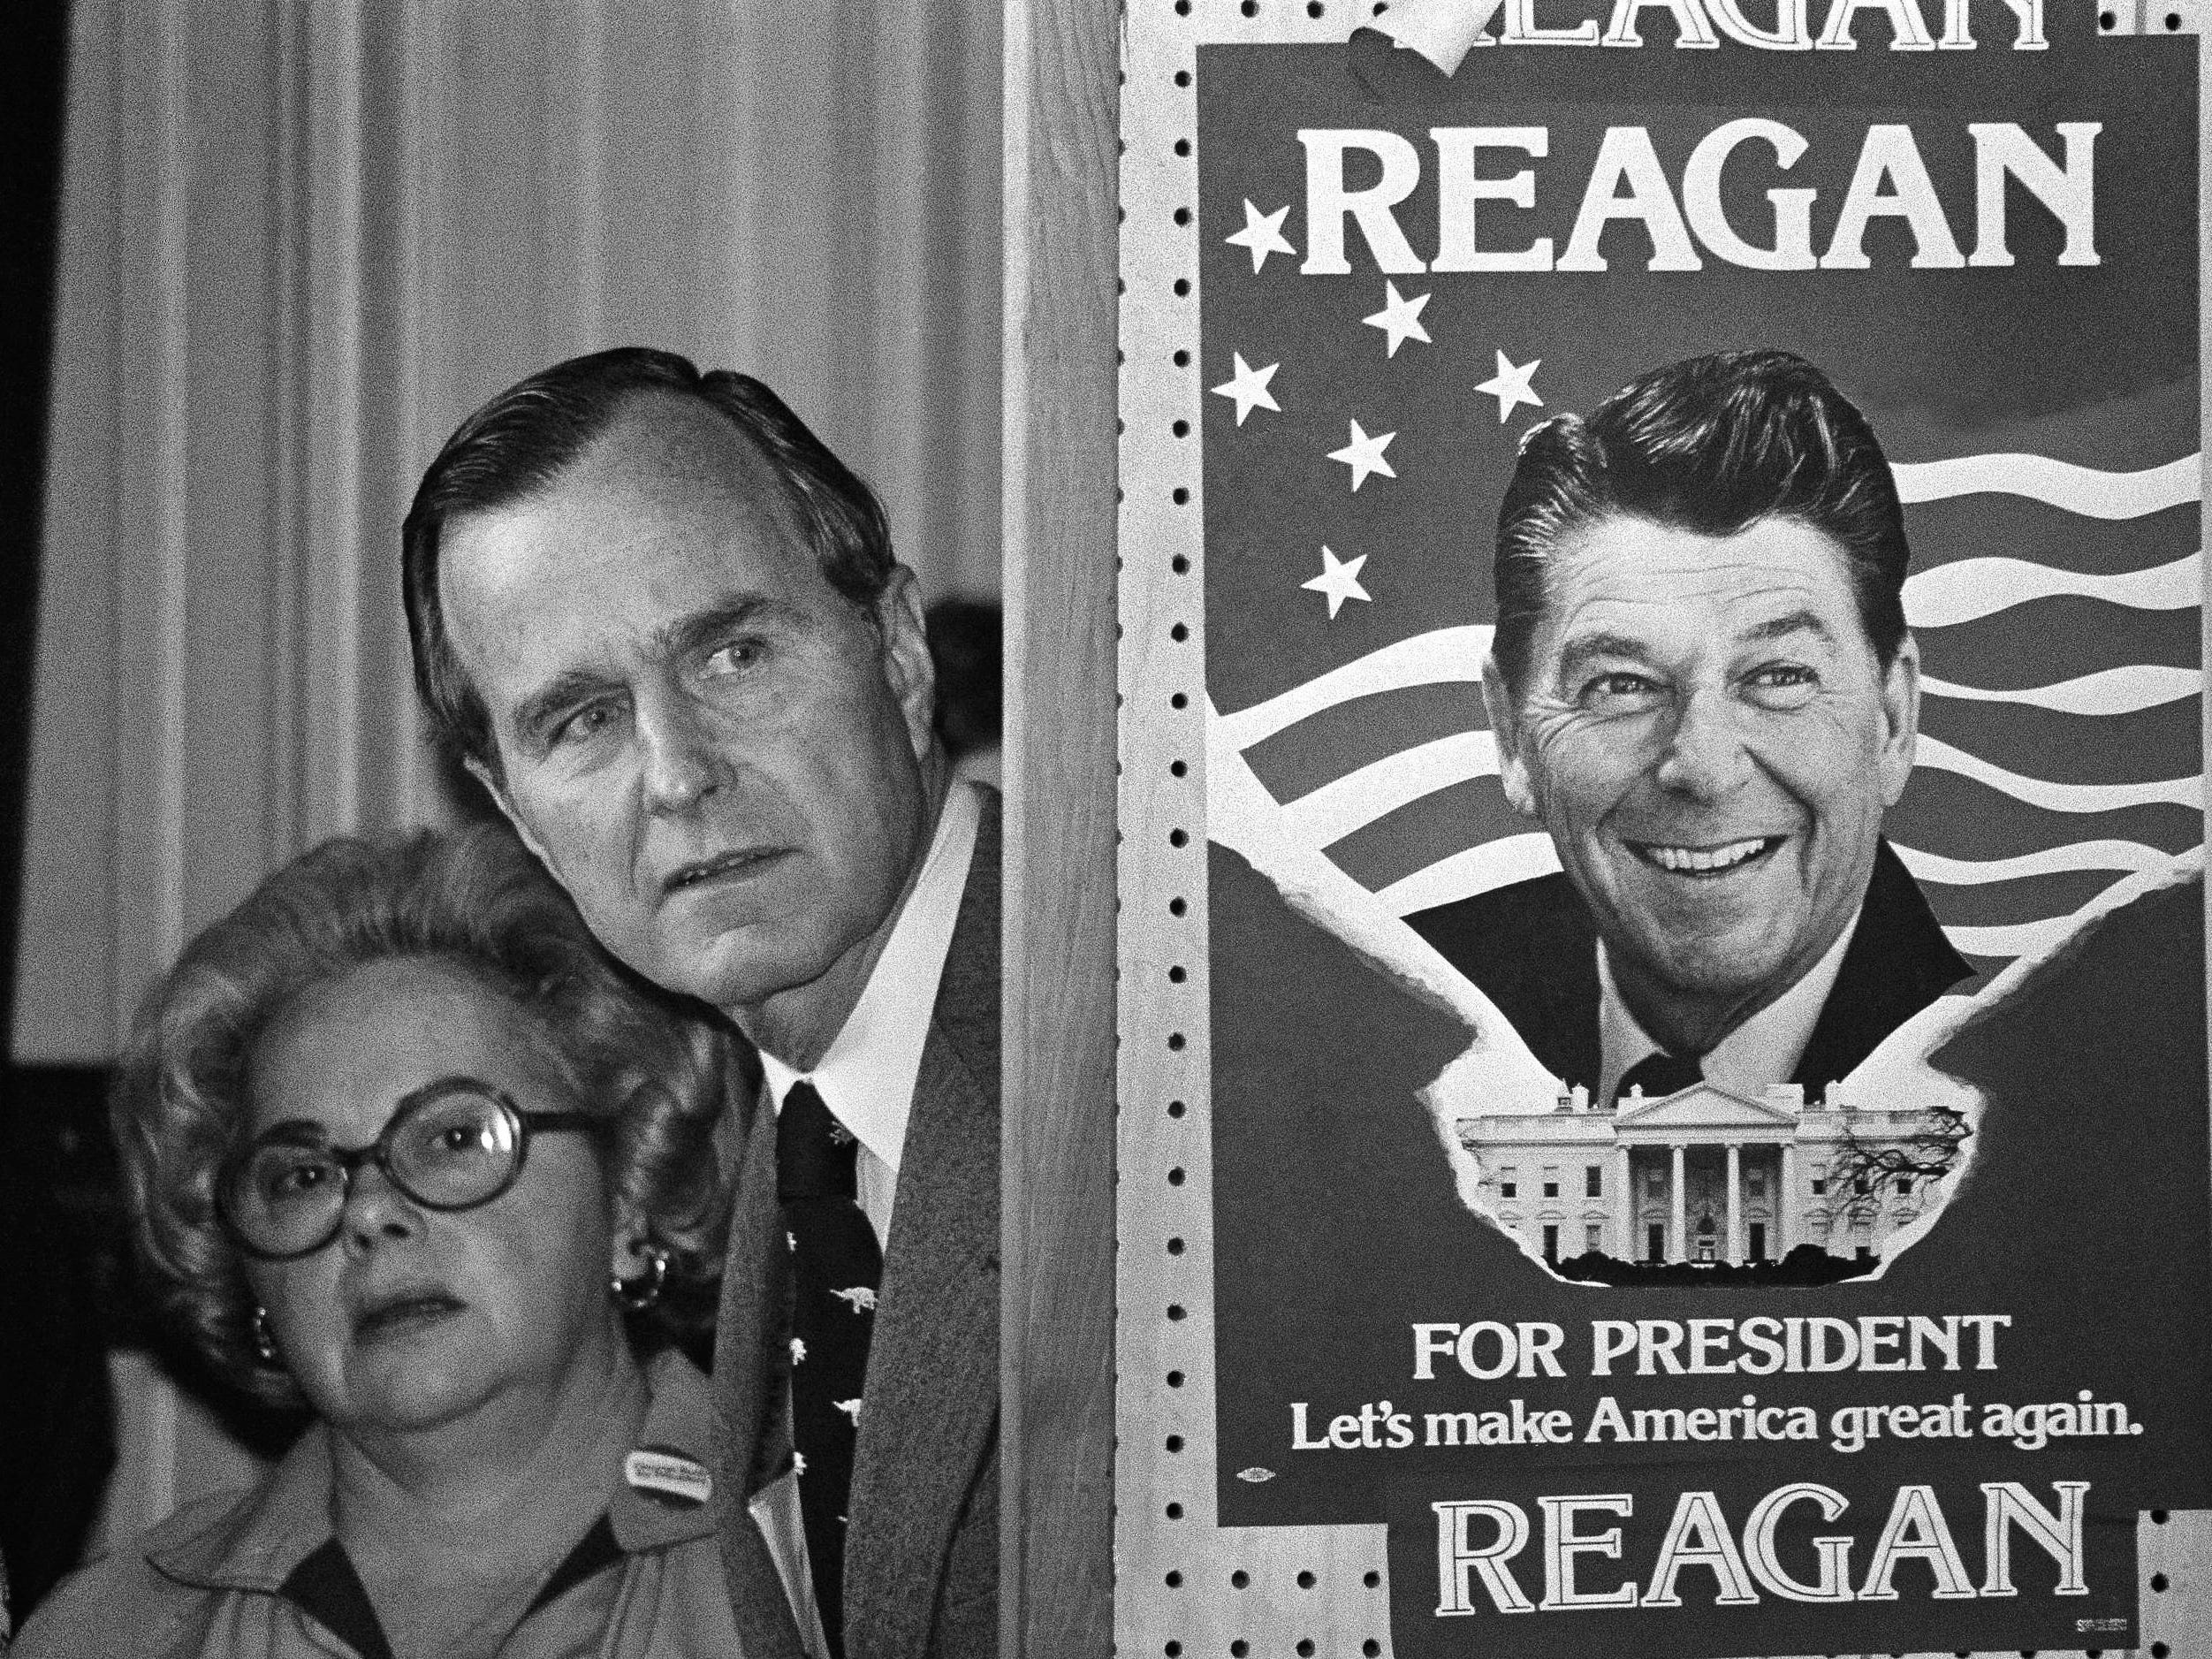 In this March 4, 1980 photo, George H.W. Bush and an unidentified woman peek around a partition with a poster of Ronald Reagan, one of his opponents for the Republican party presidential nomination, before he speaks in Columbia, S.C.